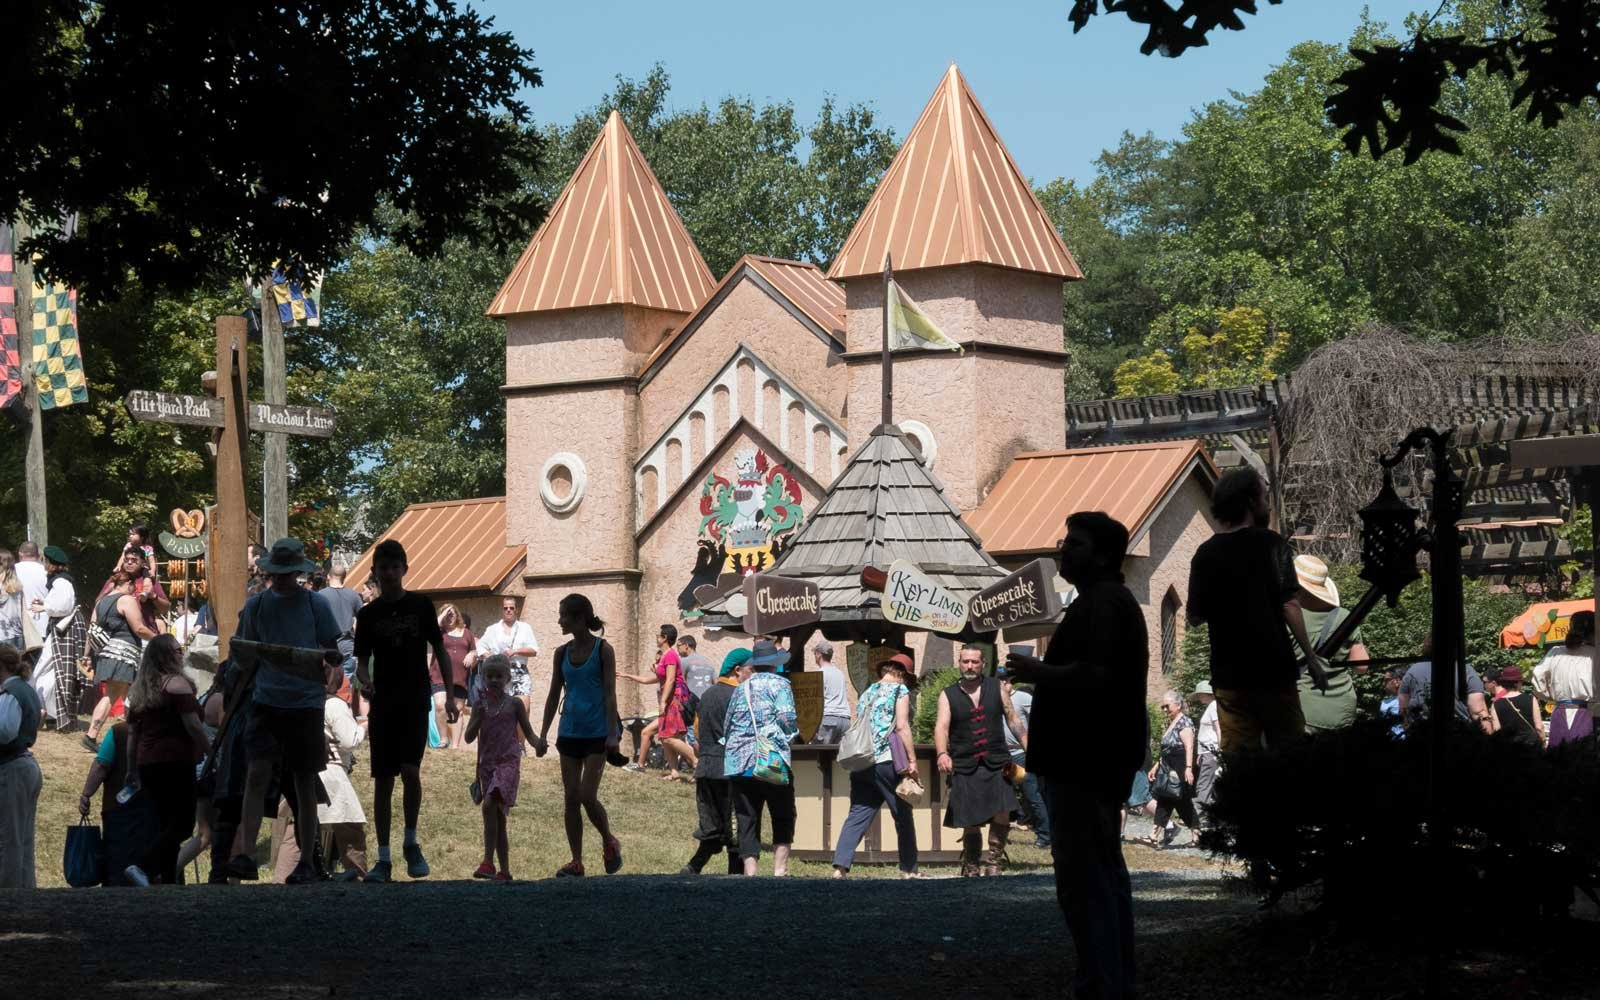 Scenes from the Maryland Renaissance Faire